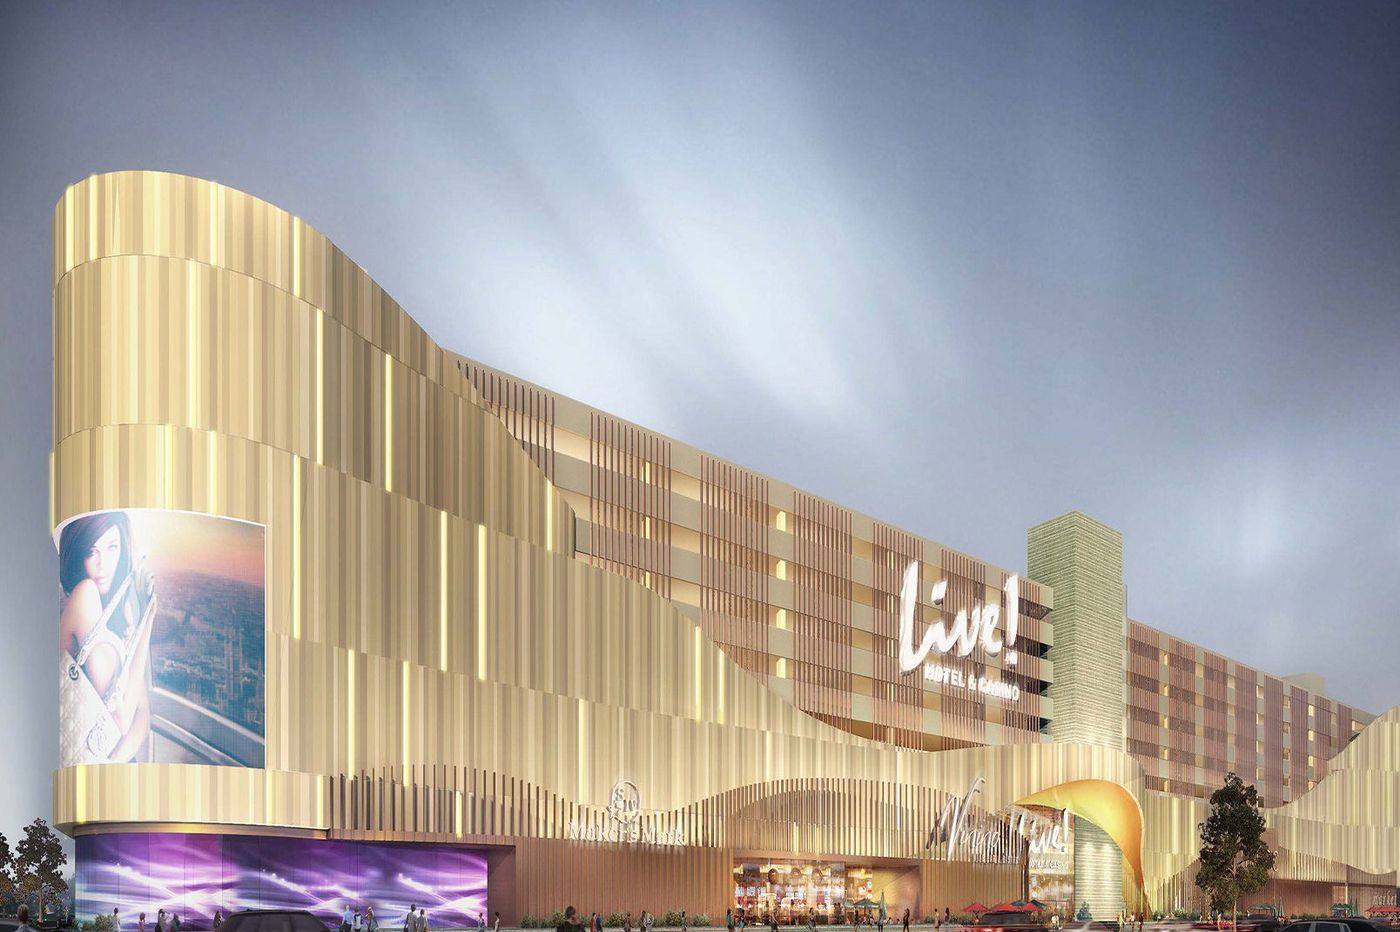 Second casino a bad bet for a city struggling with poverty | Editorial